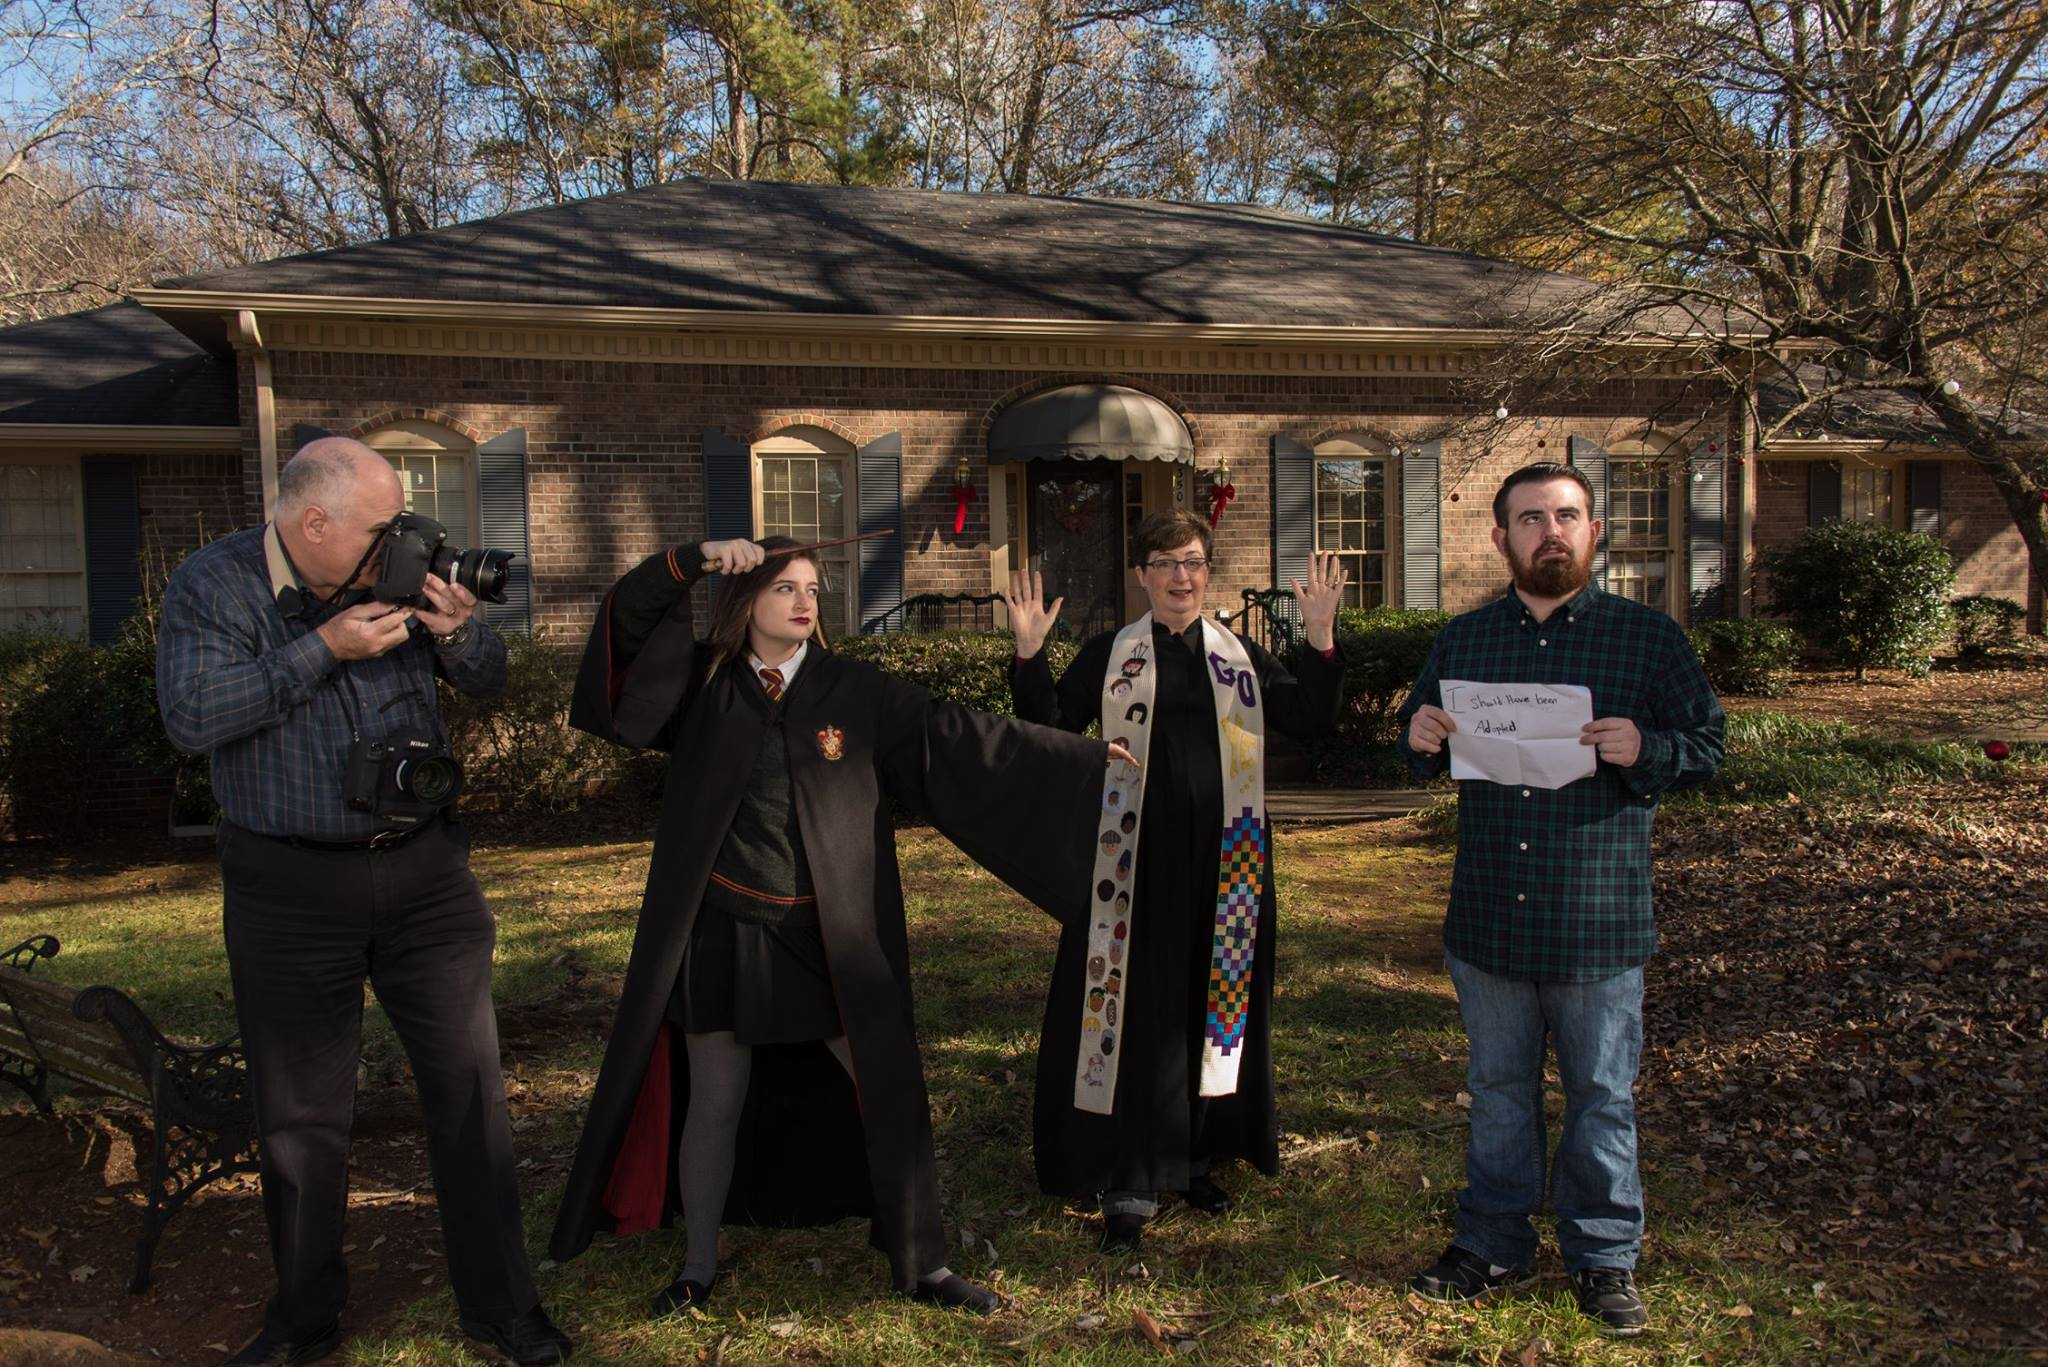 """The front of our annual Christmas card this year featured our daughter in her Hogwarts robe casting a spell on her brother, while I, in my clerical robe and stole, held up my hands to stop her and Stanley documented the action with his camera. A totally silly photo. Taylor's sign reads, """"I should have been adopted."""" since he is always shaking his head at our silly antics."""